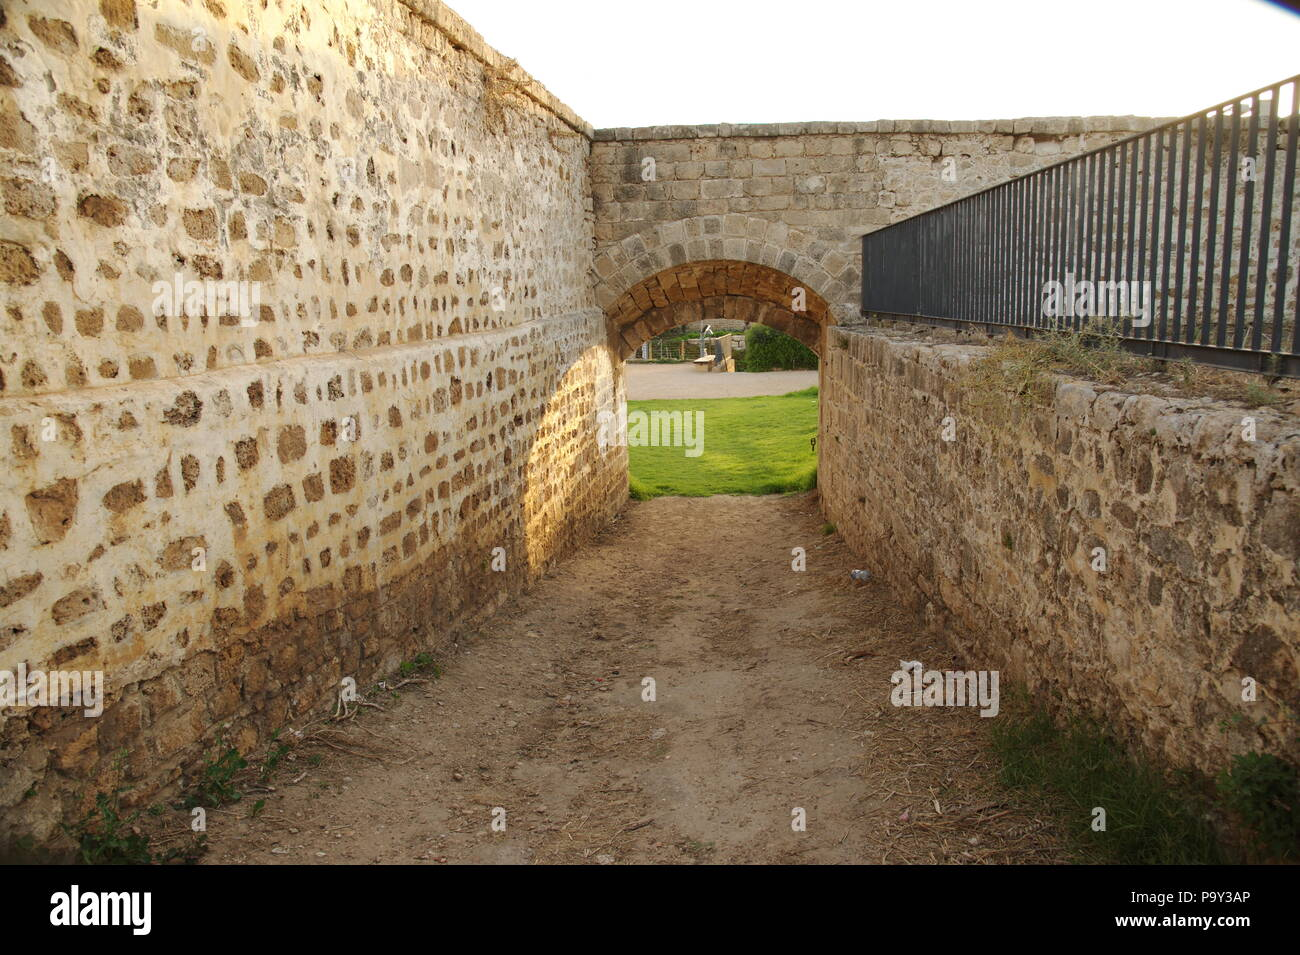 view of historic walls in ancient Acre (Akko), Israel - Stock Image